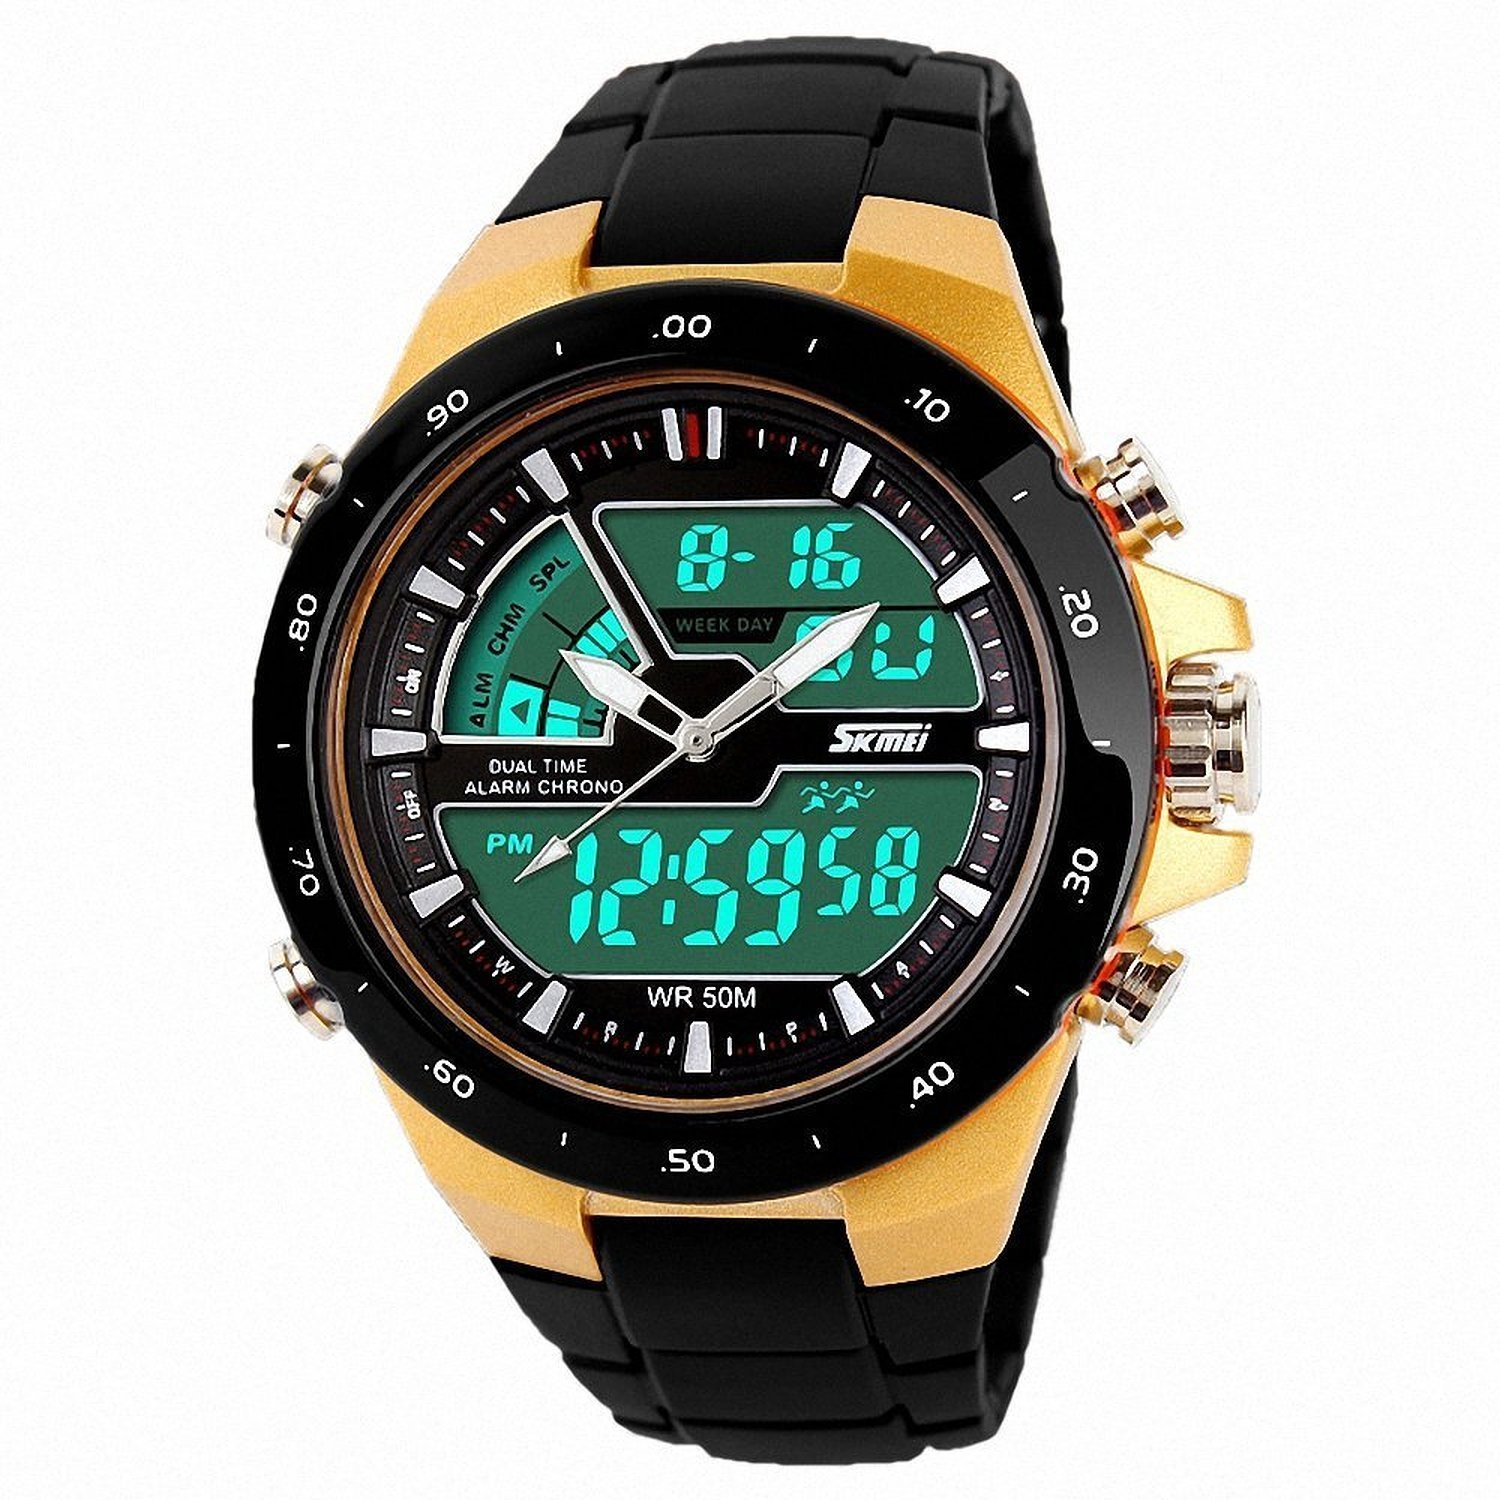 7b68f2f3b Fanmis Touch Screen Digital LED Waterproof Boys Girls Sport Casual Wrist  Watches Blue · Fanmis Women Men Sports Watches Fashion Casual LED Waterproof  ...